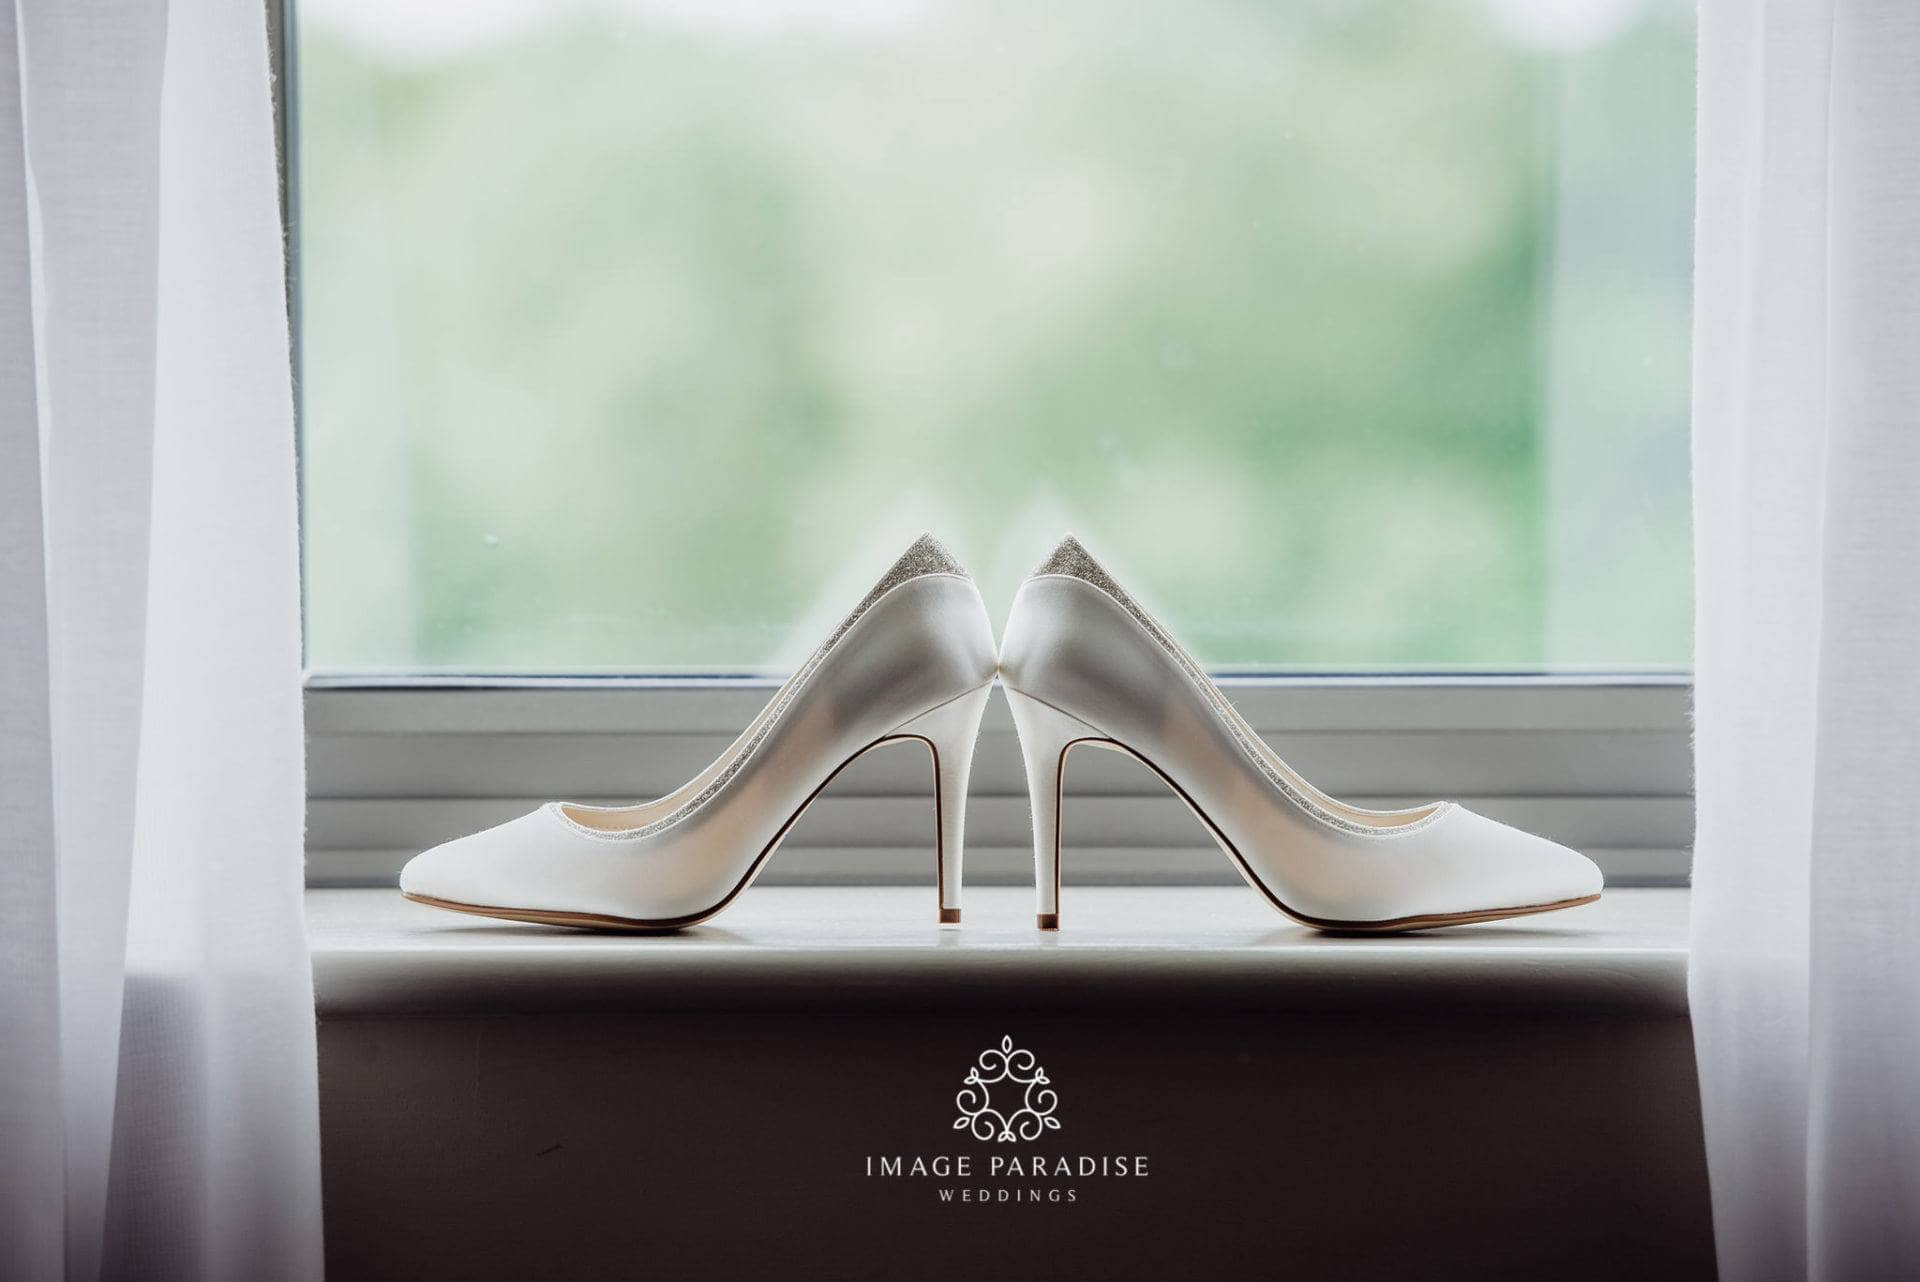 Brides wedding shoes in the window of Cotswolds Hotel Spa wedding venue